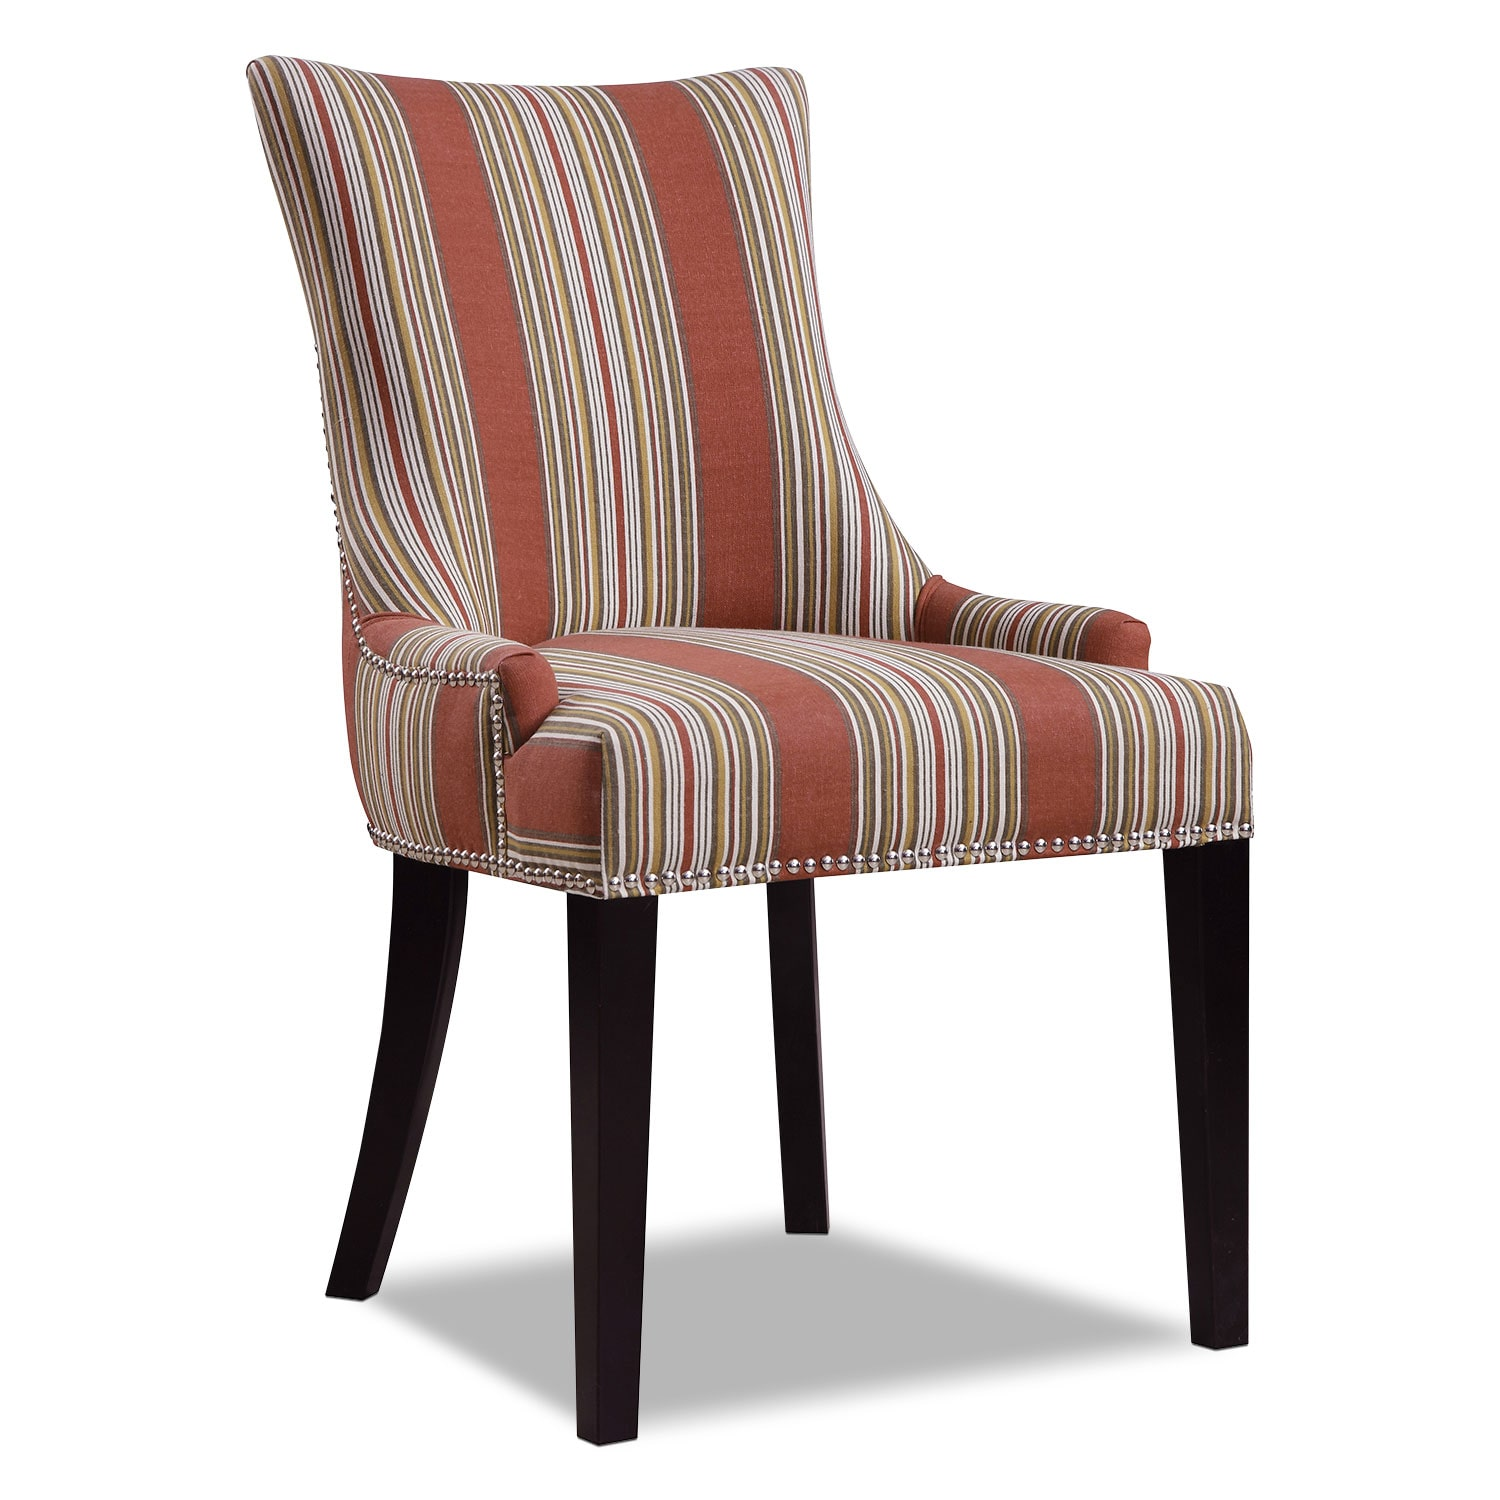 Accent Dining Room Chairs: Paige Accent Chair - Striped